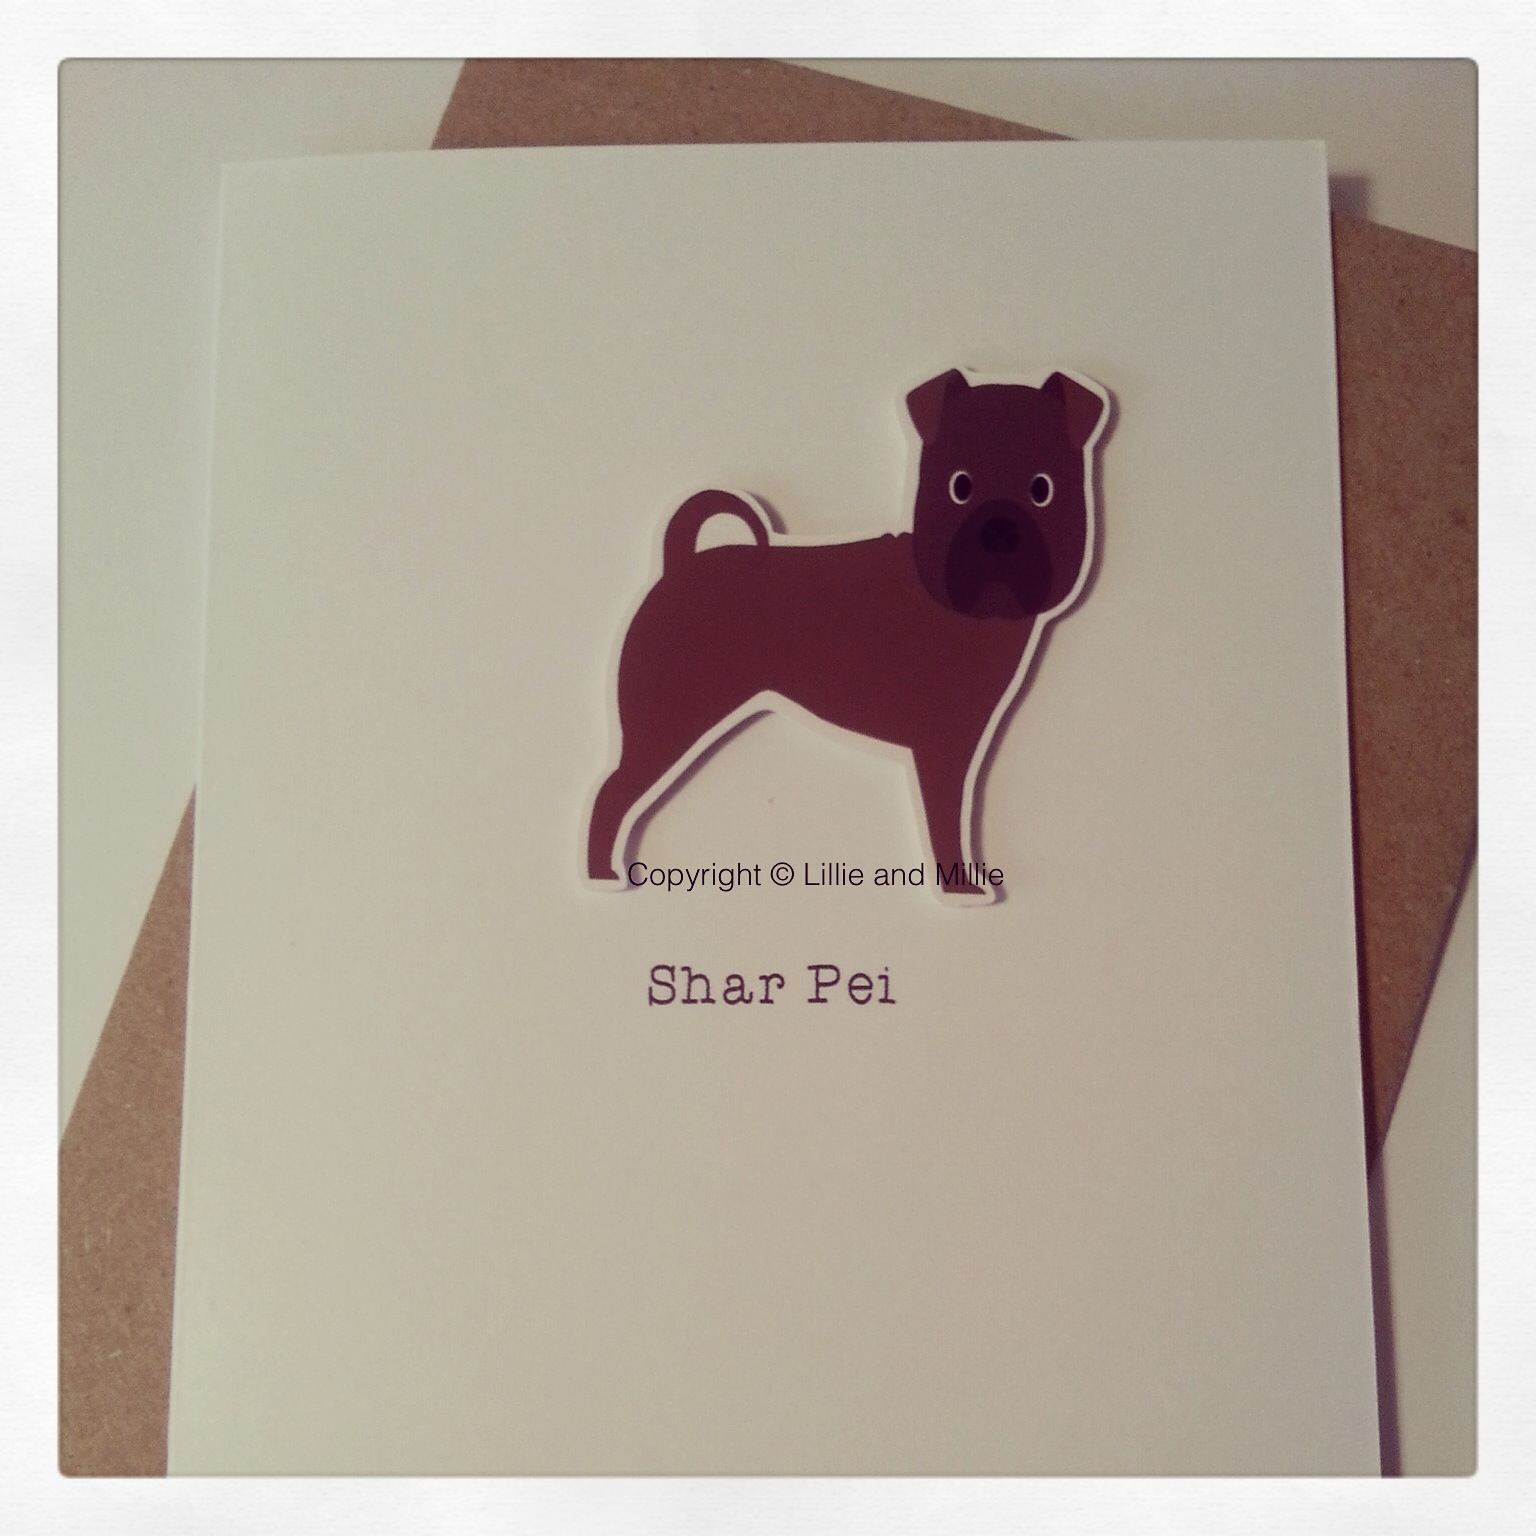 Cute and Cuddly Shar Pei Greetings Card